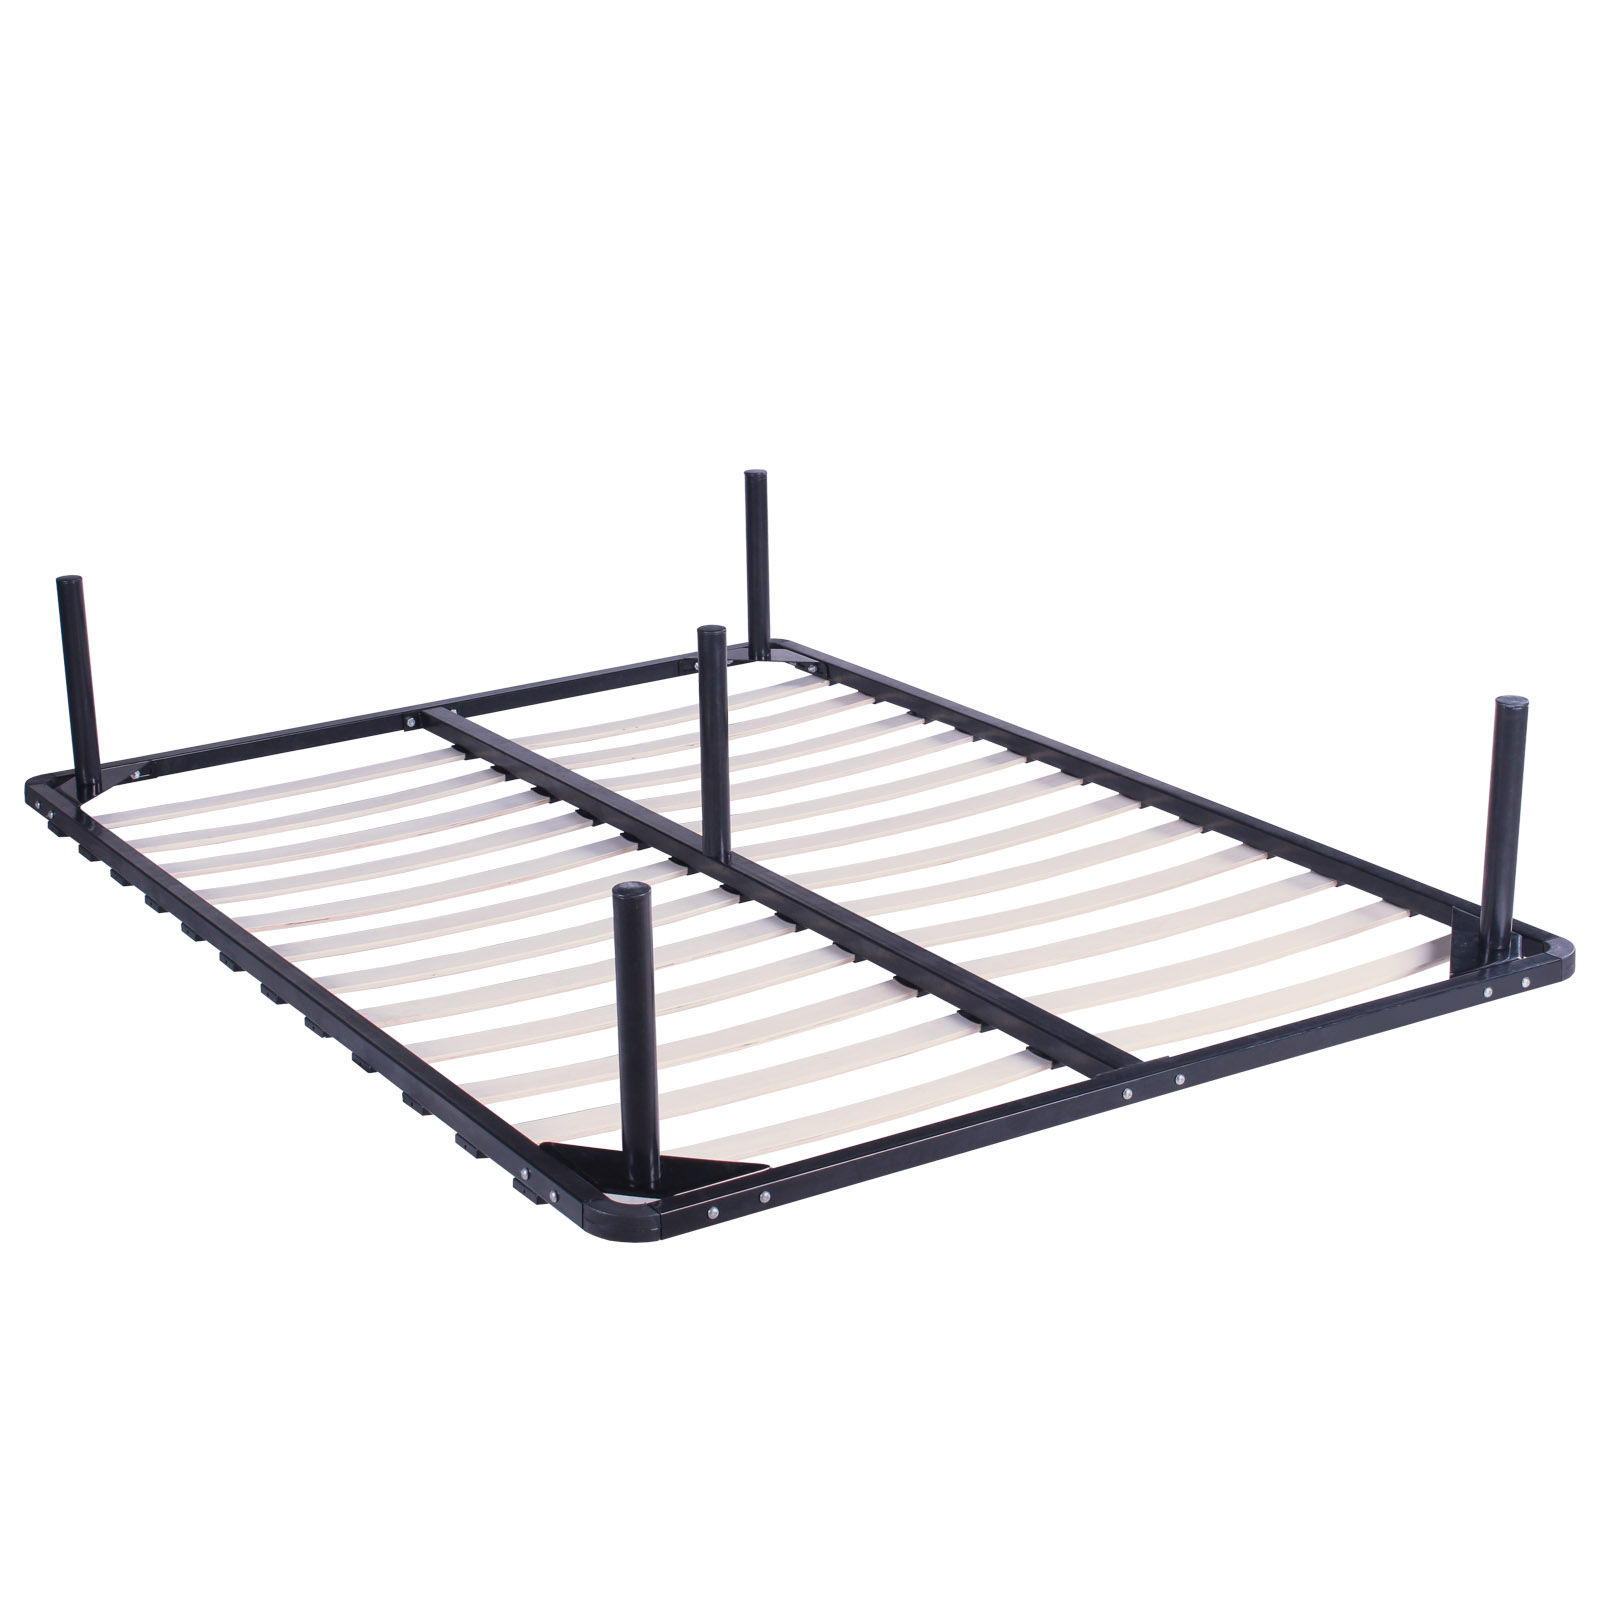 Twin size wood slats metal bed frame platform bedroom Metal bed frame twin